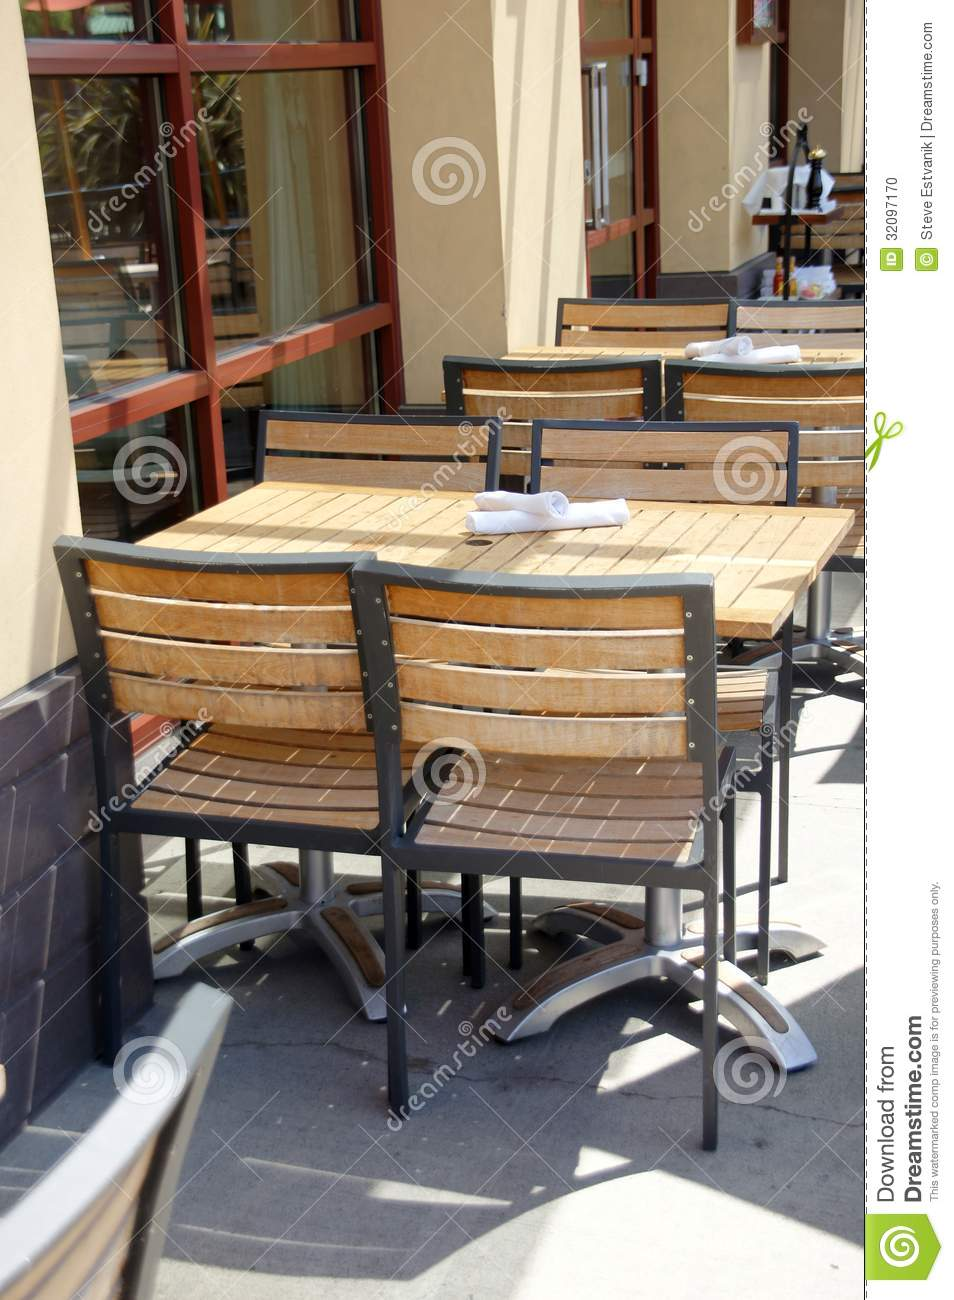 Wood restaurant furniture - Wooden Tables And Chairs In Outdoor Restaurant